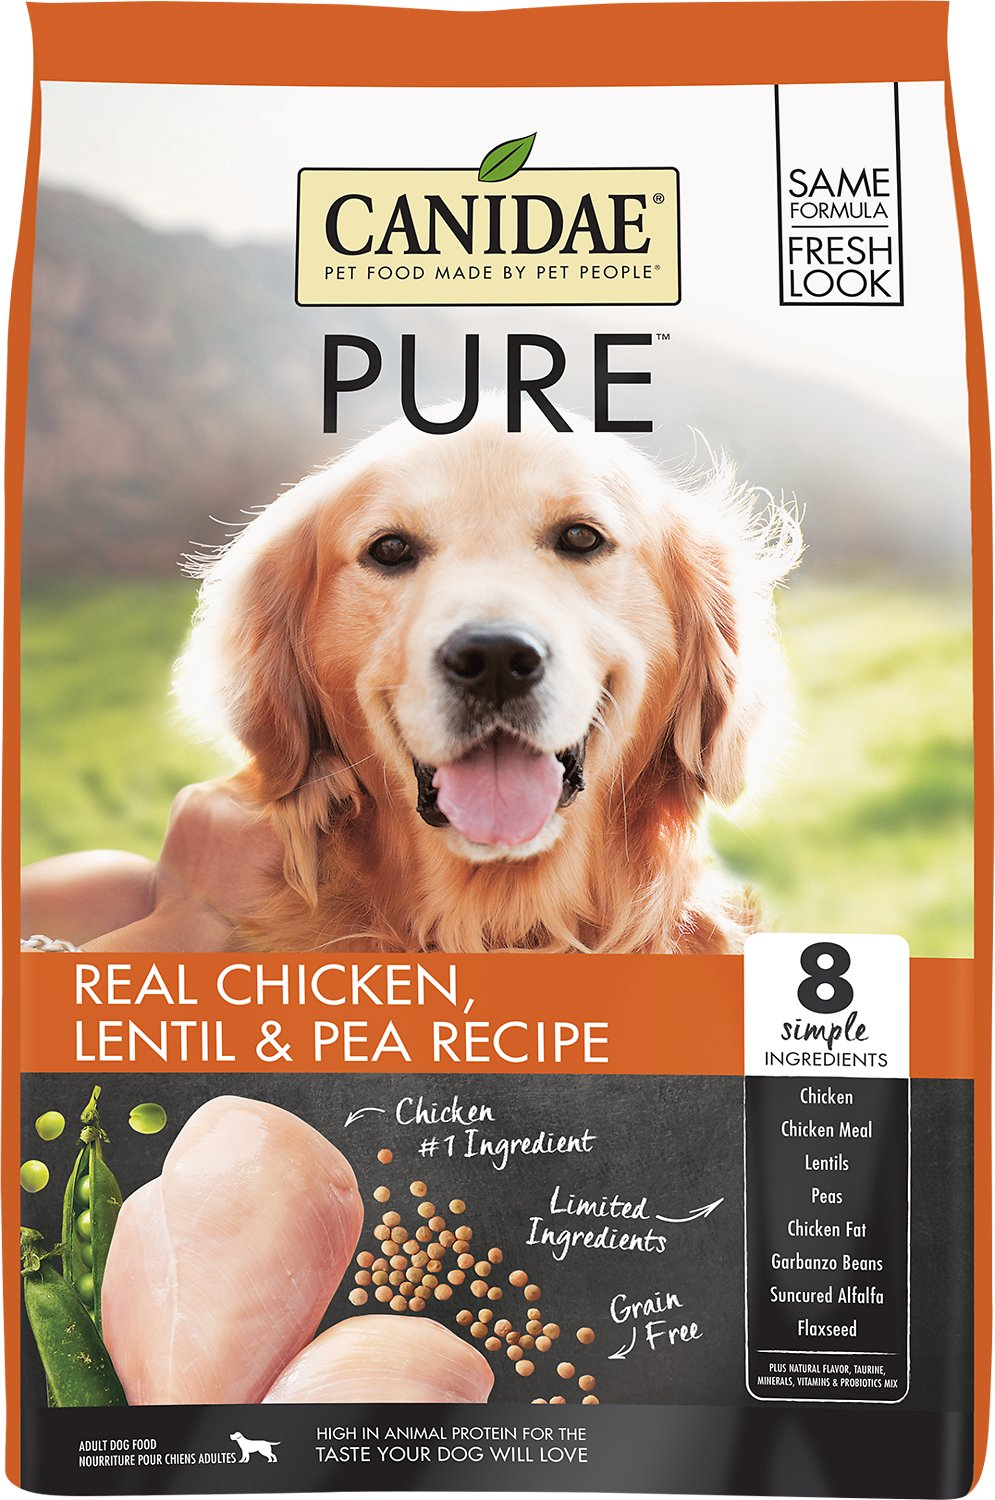 CANIDAE Grain-Free PURE Real Chicken, Lentil & Pea Recipe Dry Dog Food